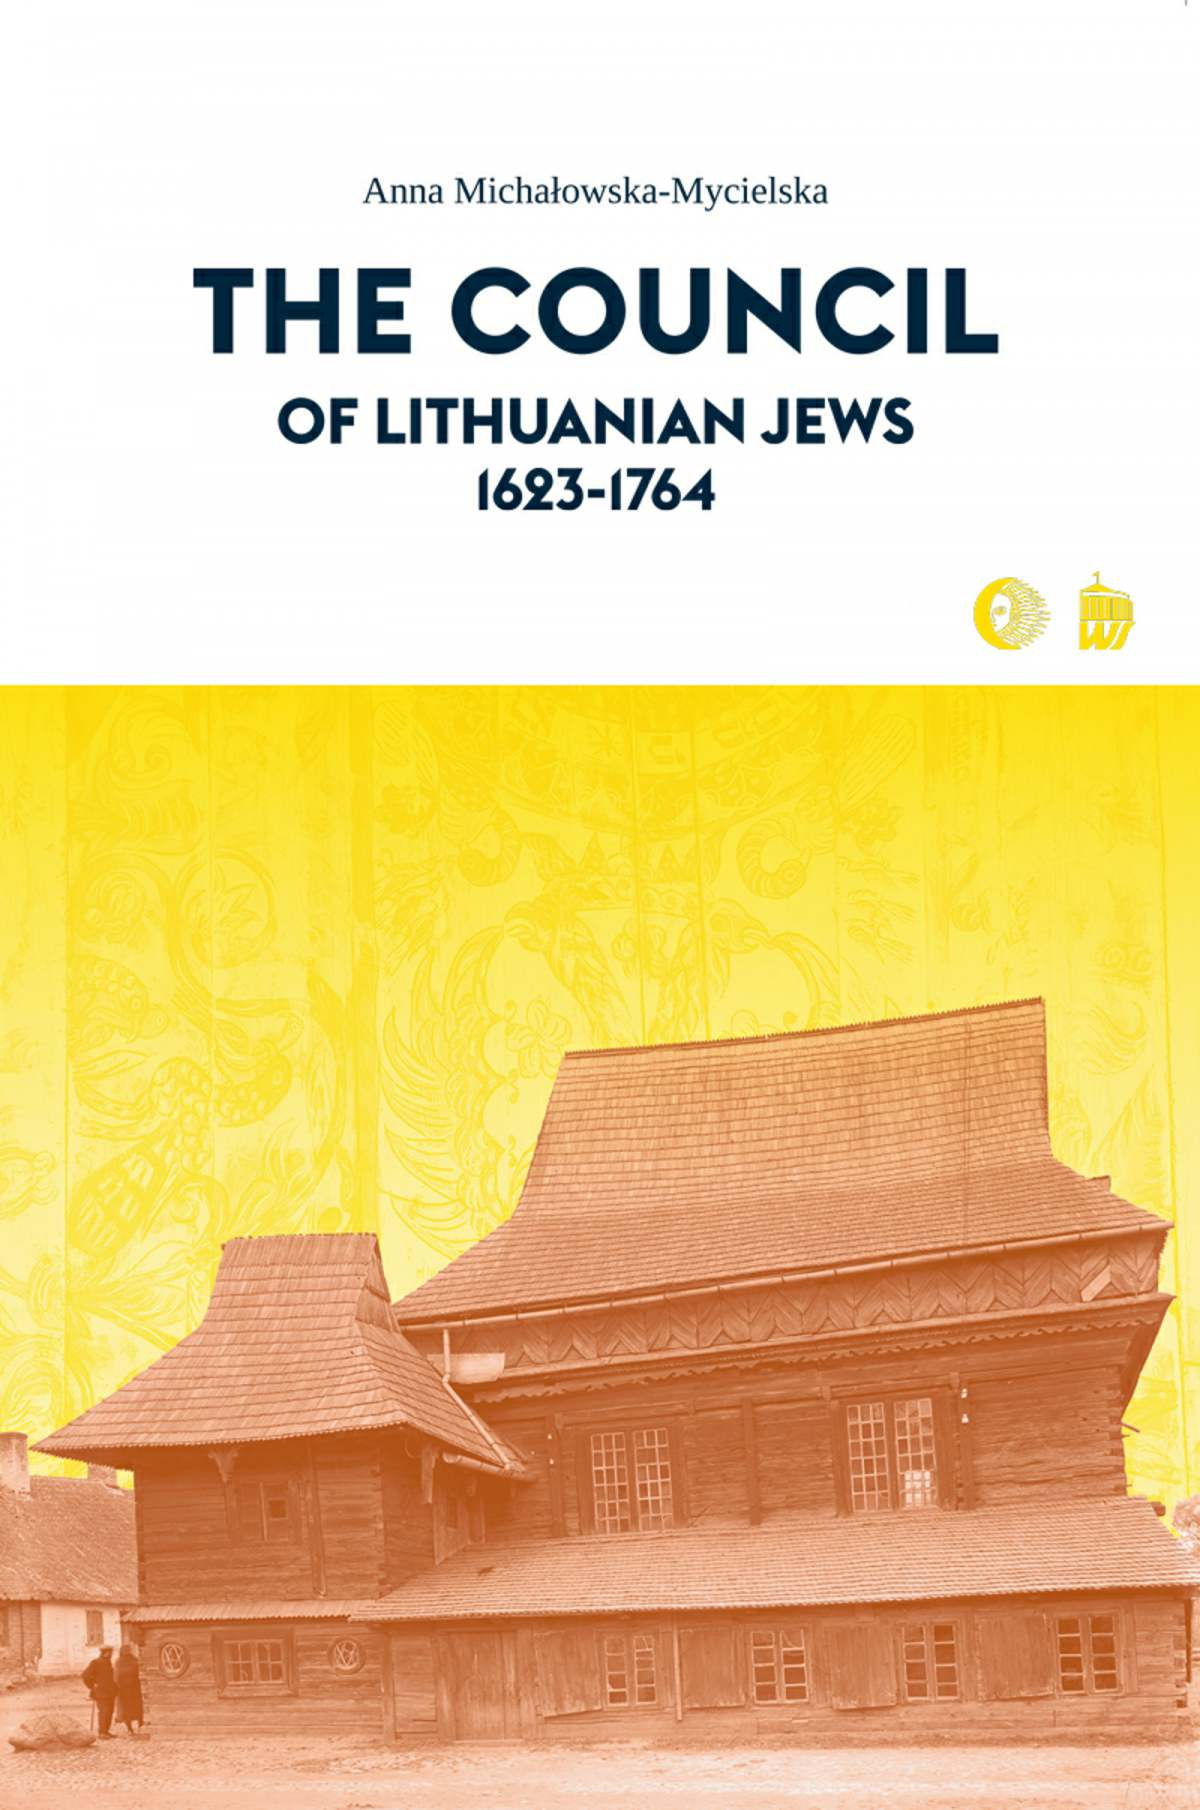 The Council of Lithuanian Jews 1623-1764 - Ebook (Książka EPUB) do pobrania w formacie EPUB